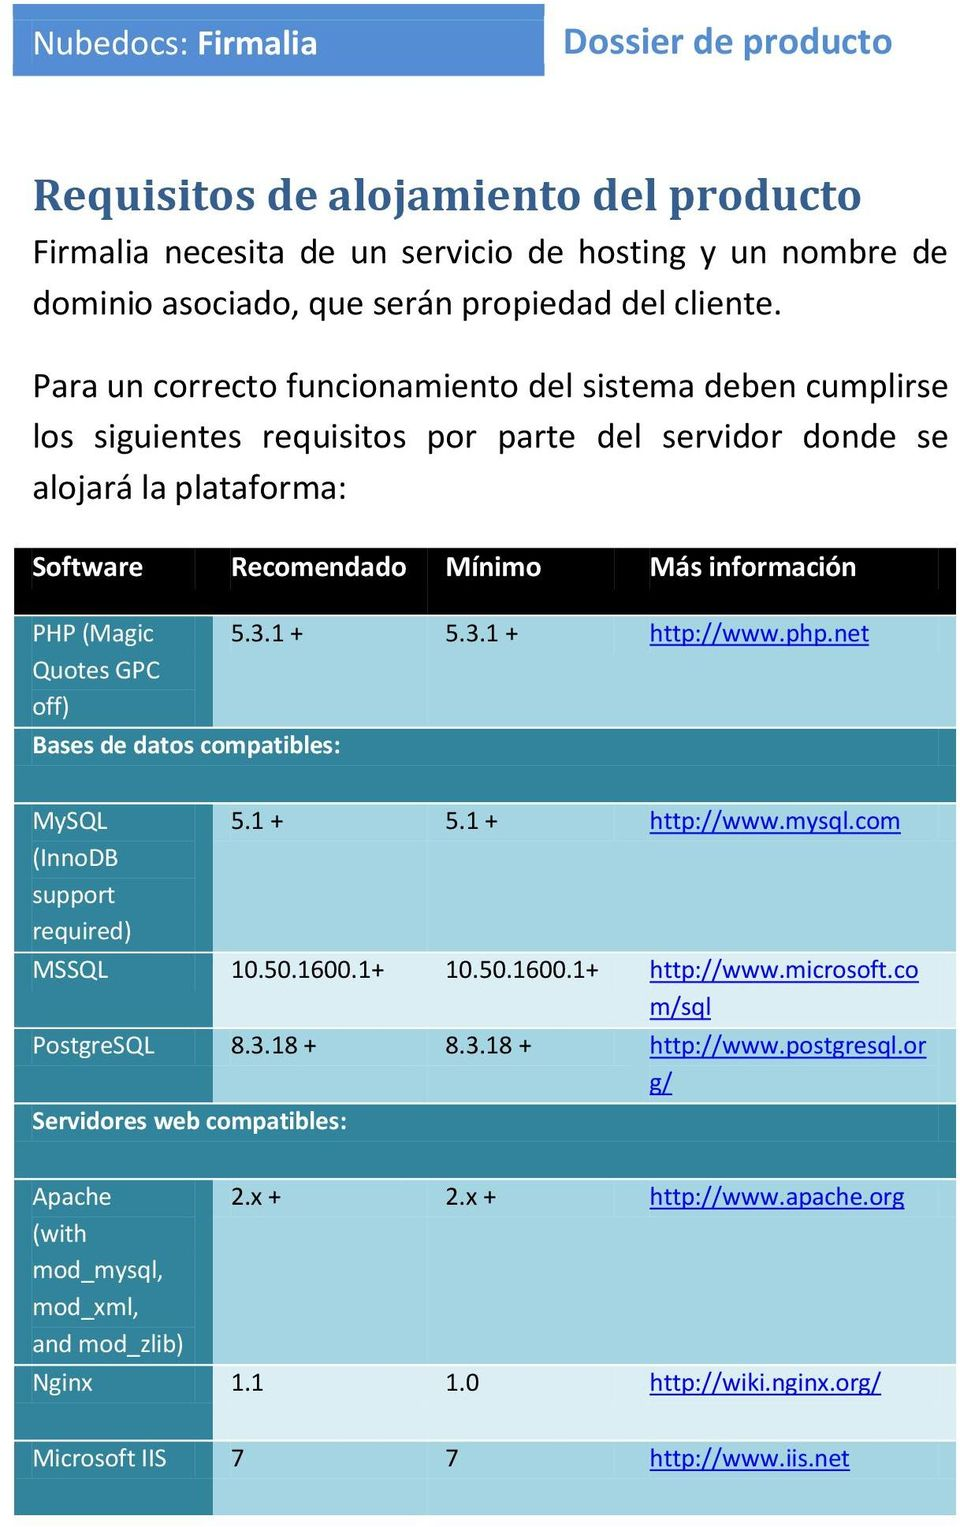 Quotes GPC off) Bases de datos compatibles: 5.3.1 + 5.3.1 + http://www.php.net MySQL (InnoDB support required) 5.1 + 5.1 + http://www.mysql.com MSSQL 10.50.1600.1+ 10.50.1600.1+ http://www.microsoft.